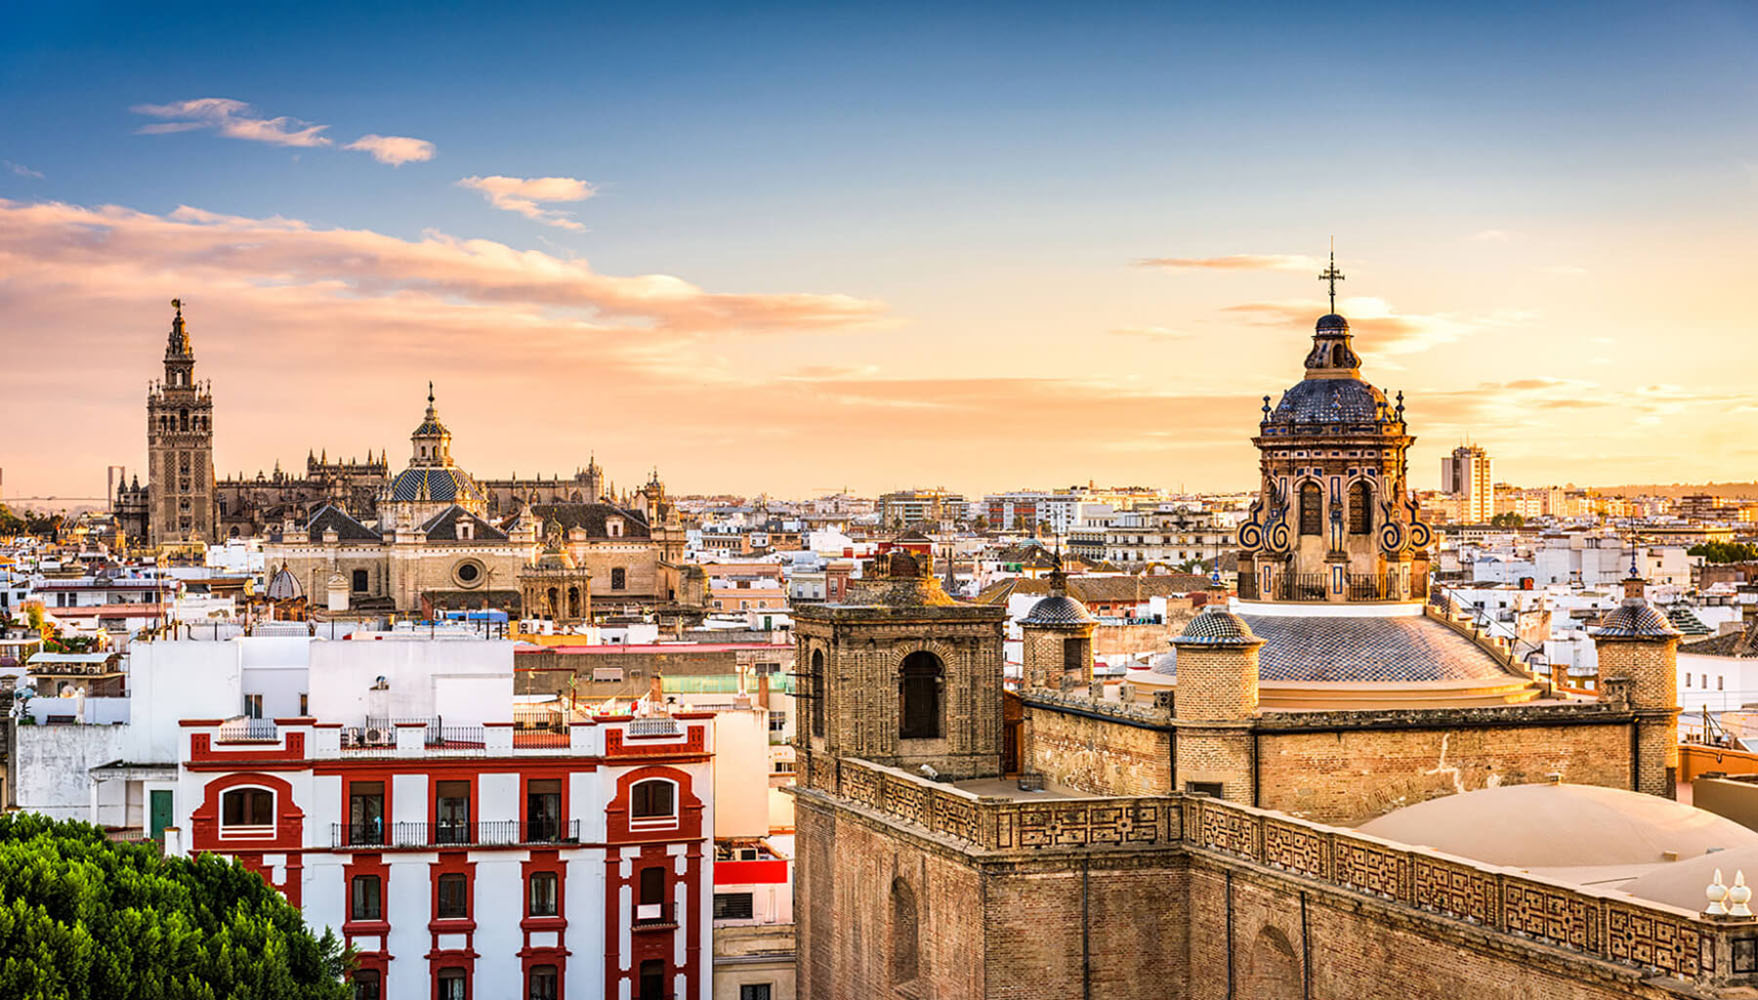 11-Night Seville & The Canaries Voyage